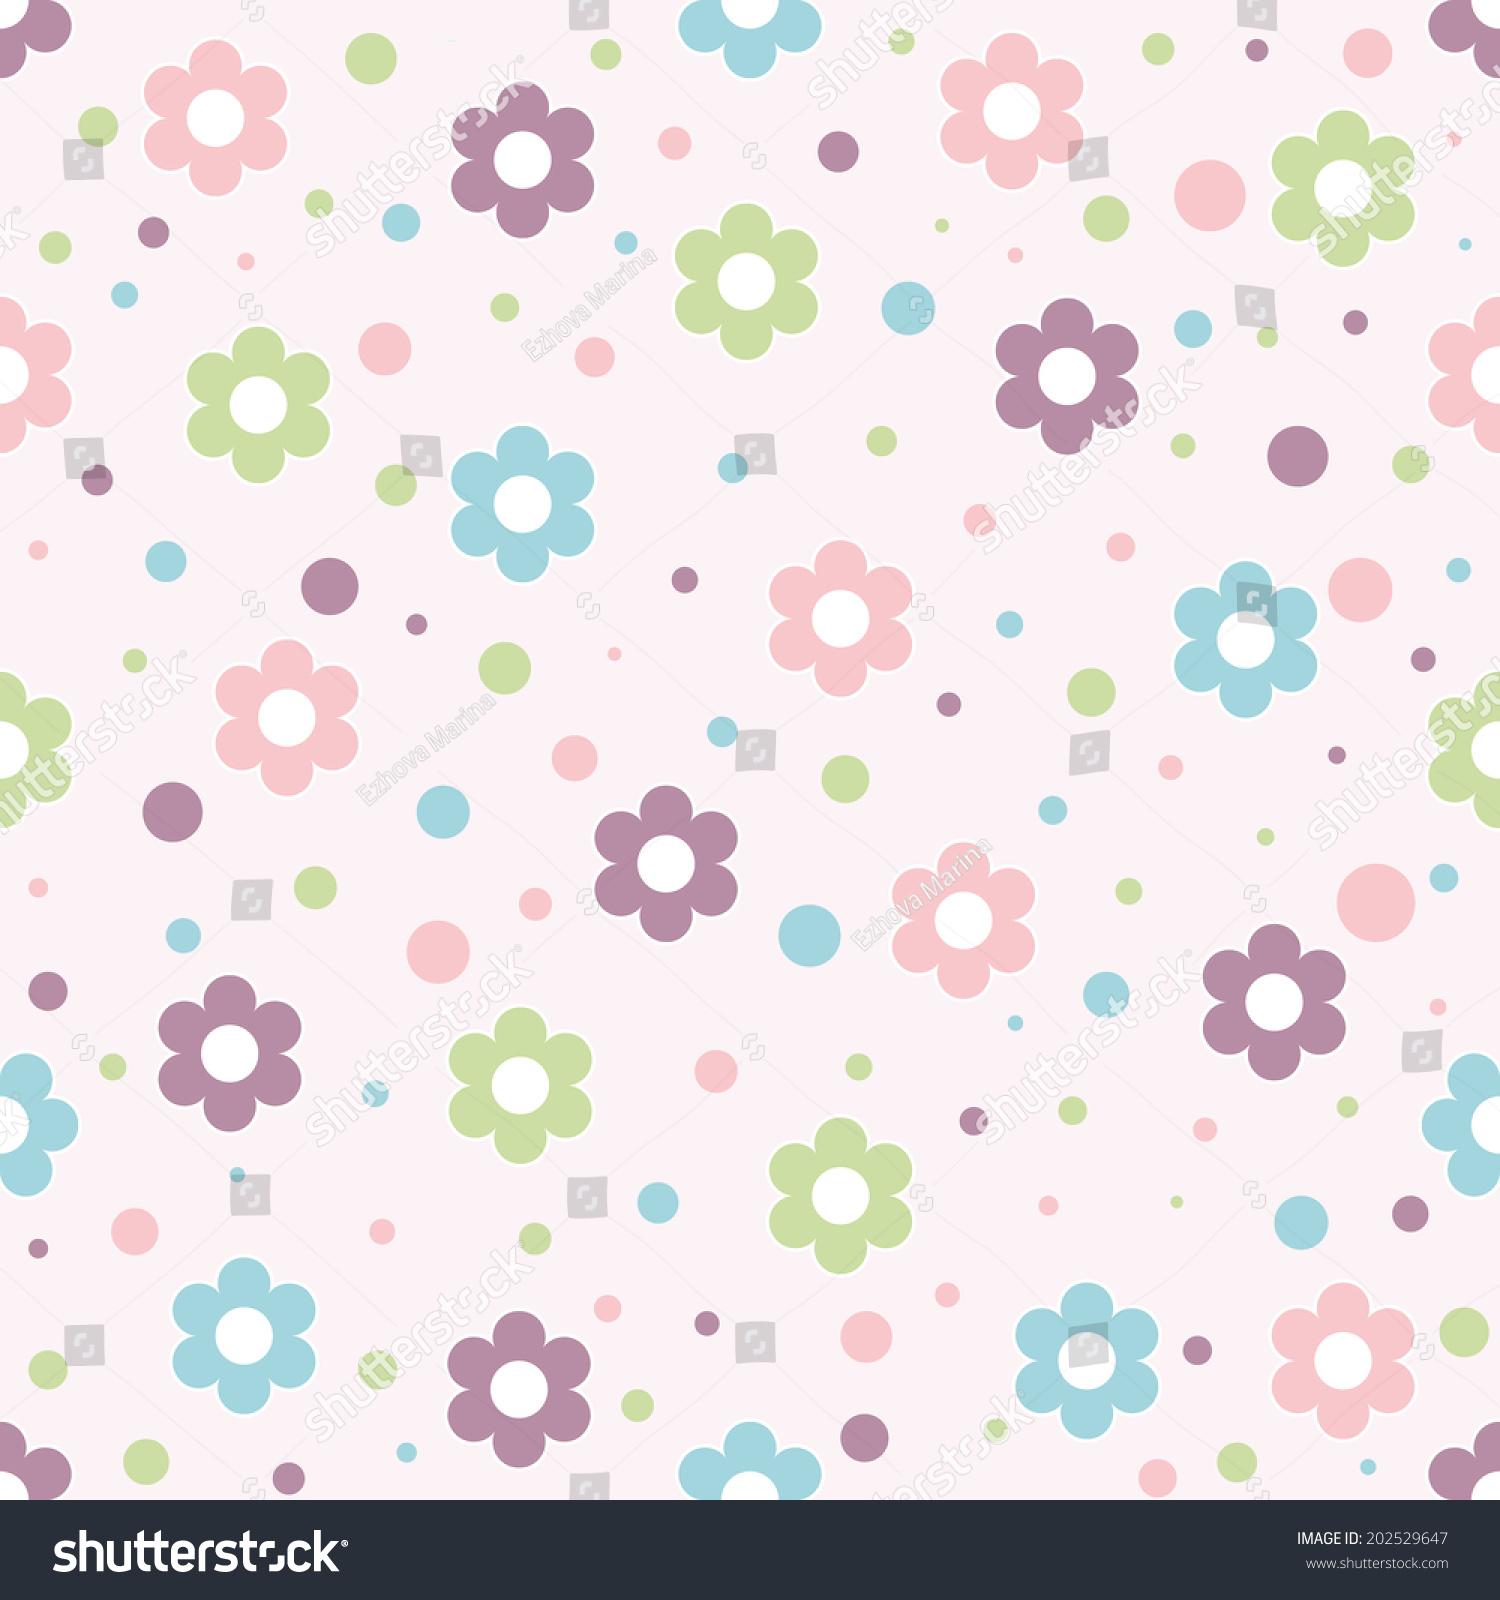 Scrapbook paper baby - Baby Background With Colorful Flowers And Circles Paper For Scrapbook Or Background